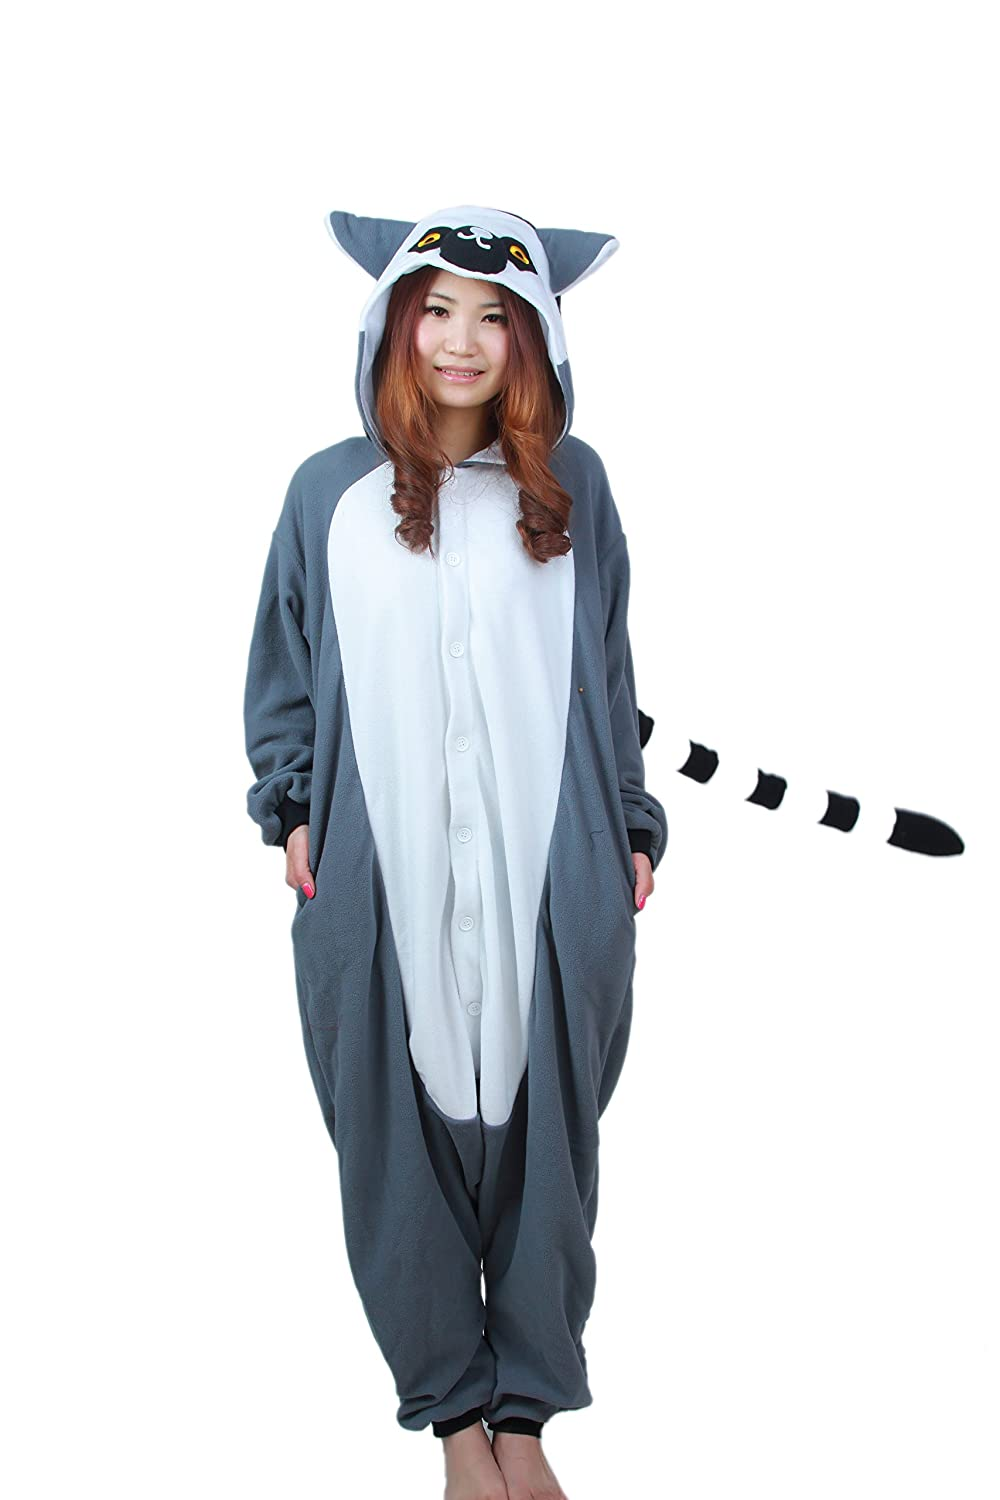 TELLOYSD Animale Cartone Animato Pigiama Adulto Cosplay Costume Casual Tuta Sportiva Uistitì (formato adulto XL (178-185cm))